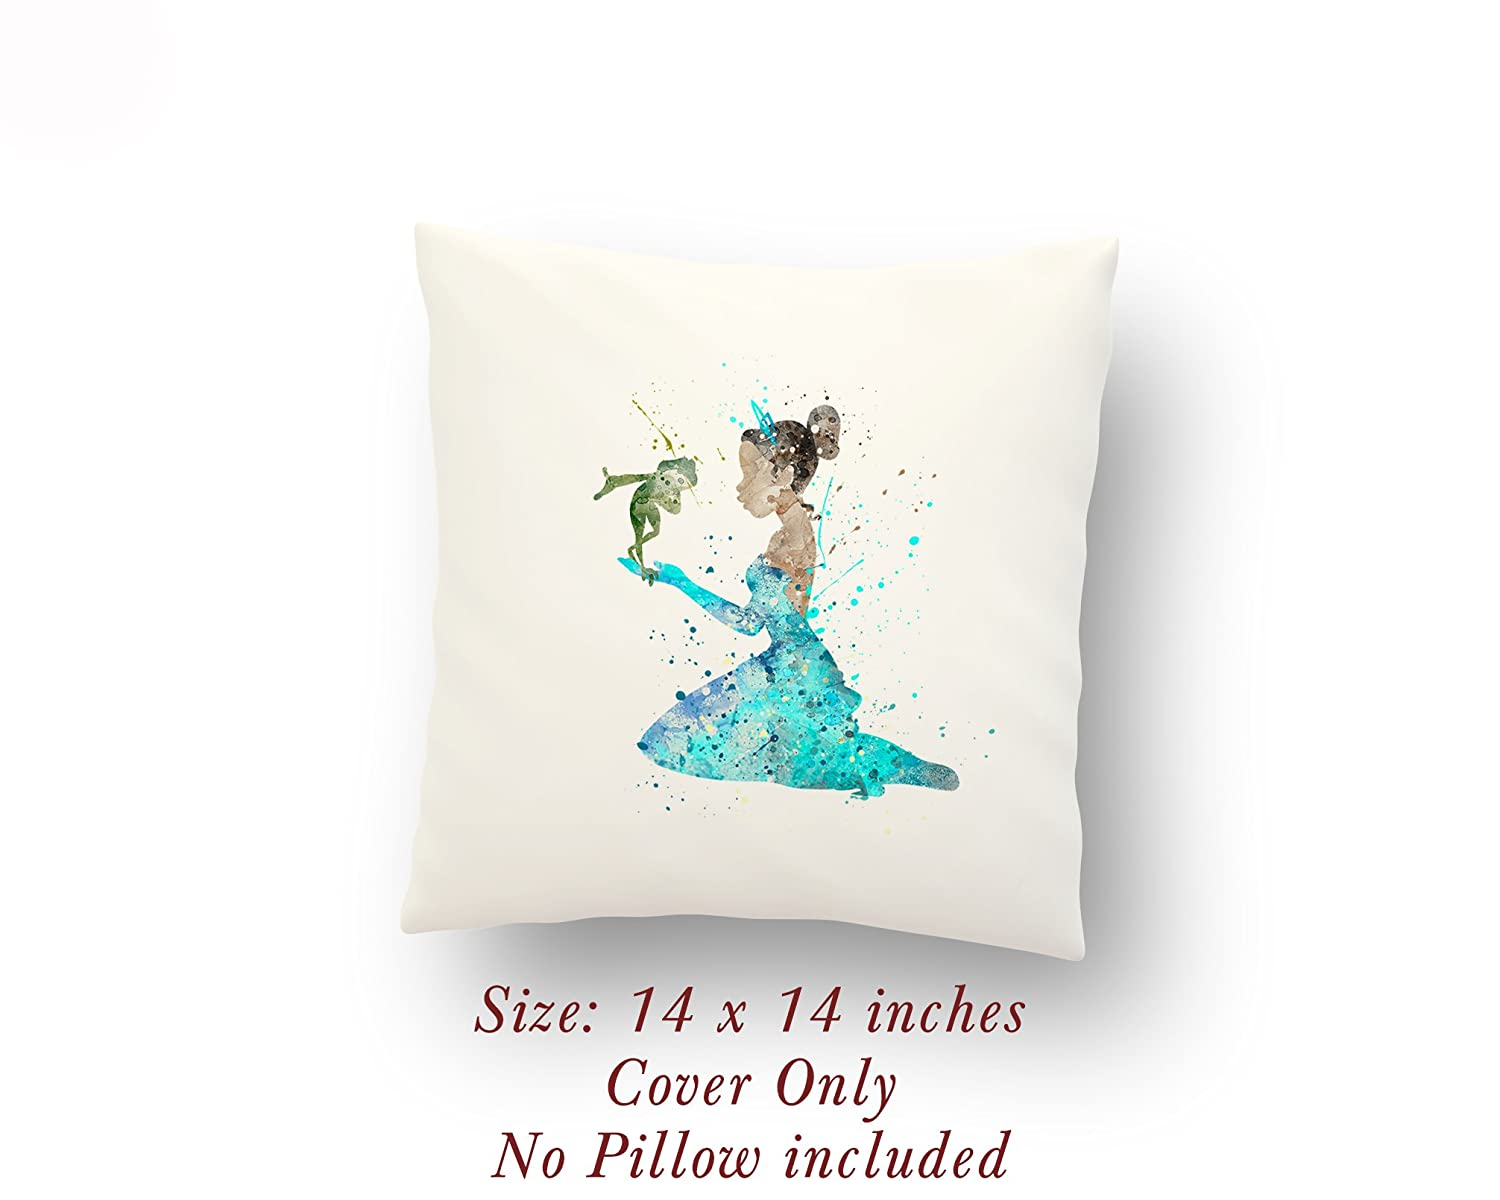 Princess Tiana The Princess and the Frog 14 x 14 inches Pillow Cover